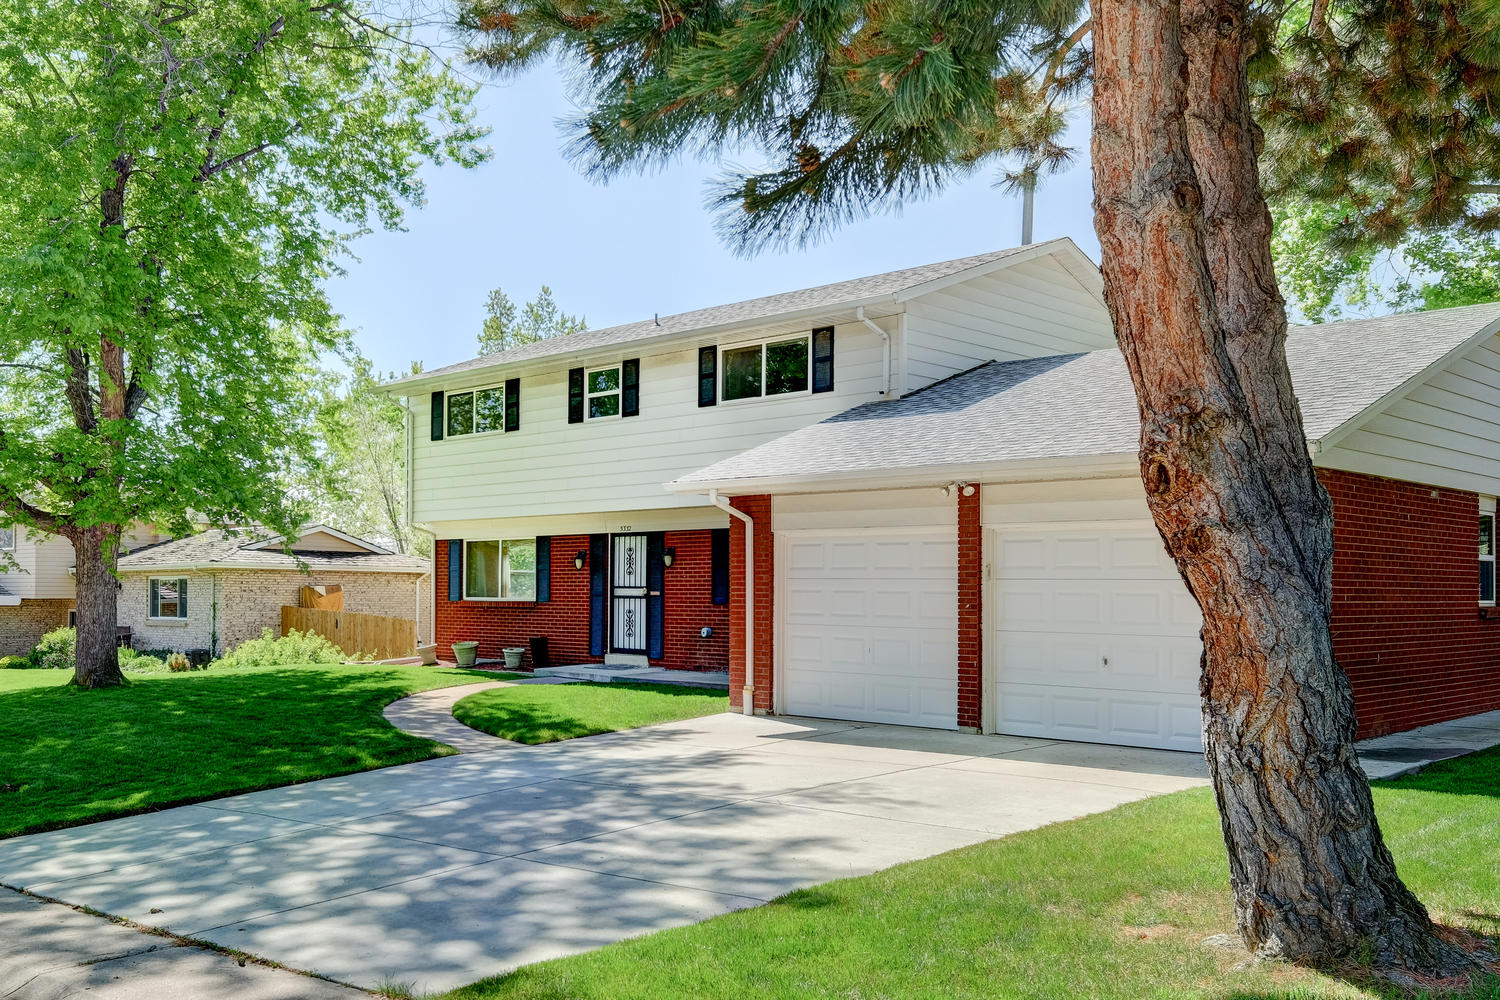 Single Family Home for Sale at Well maintained home in the desirable Columbine Knolls 5332 W Roxbury Pl Littleton, Colorado, 80128 United States